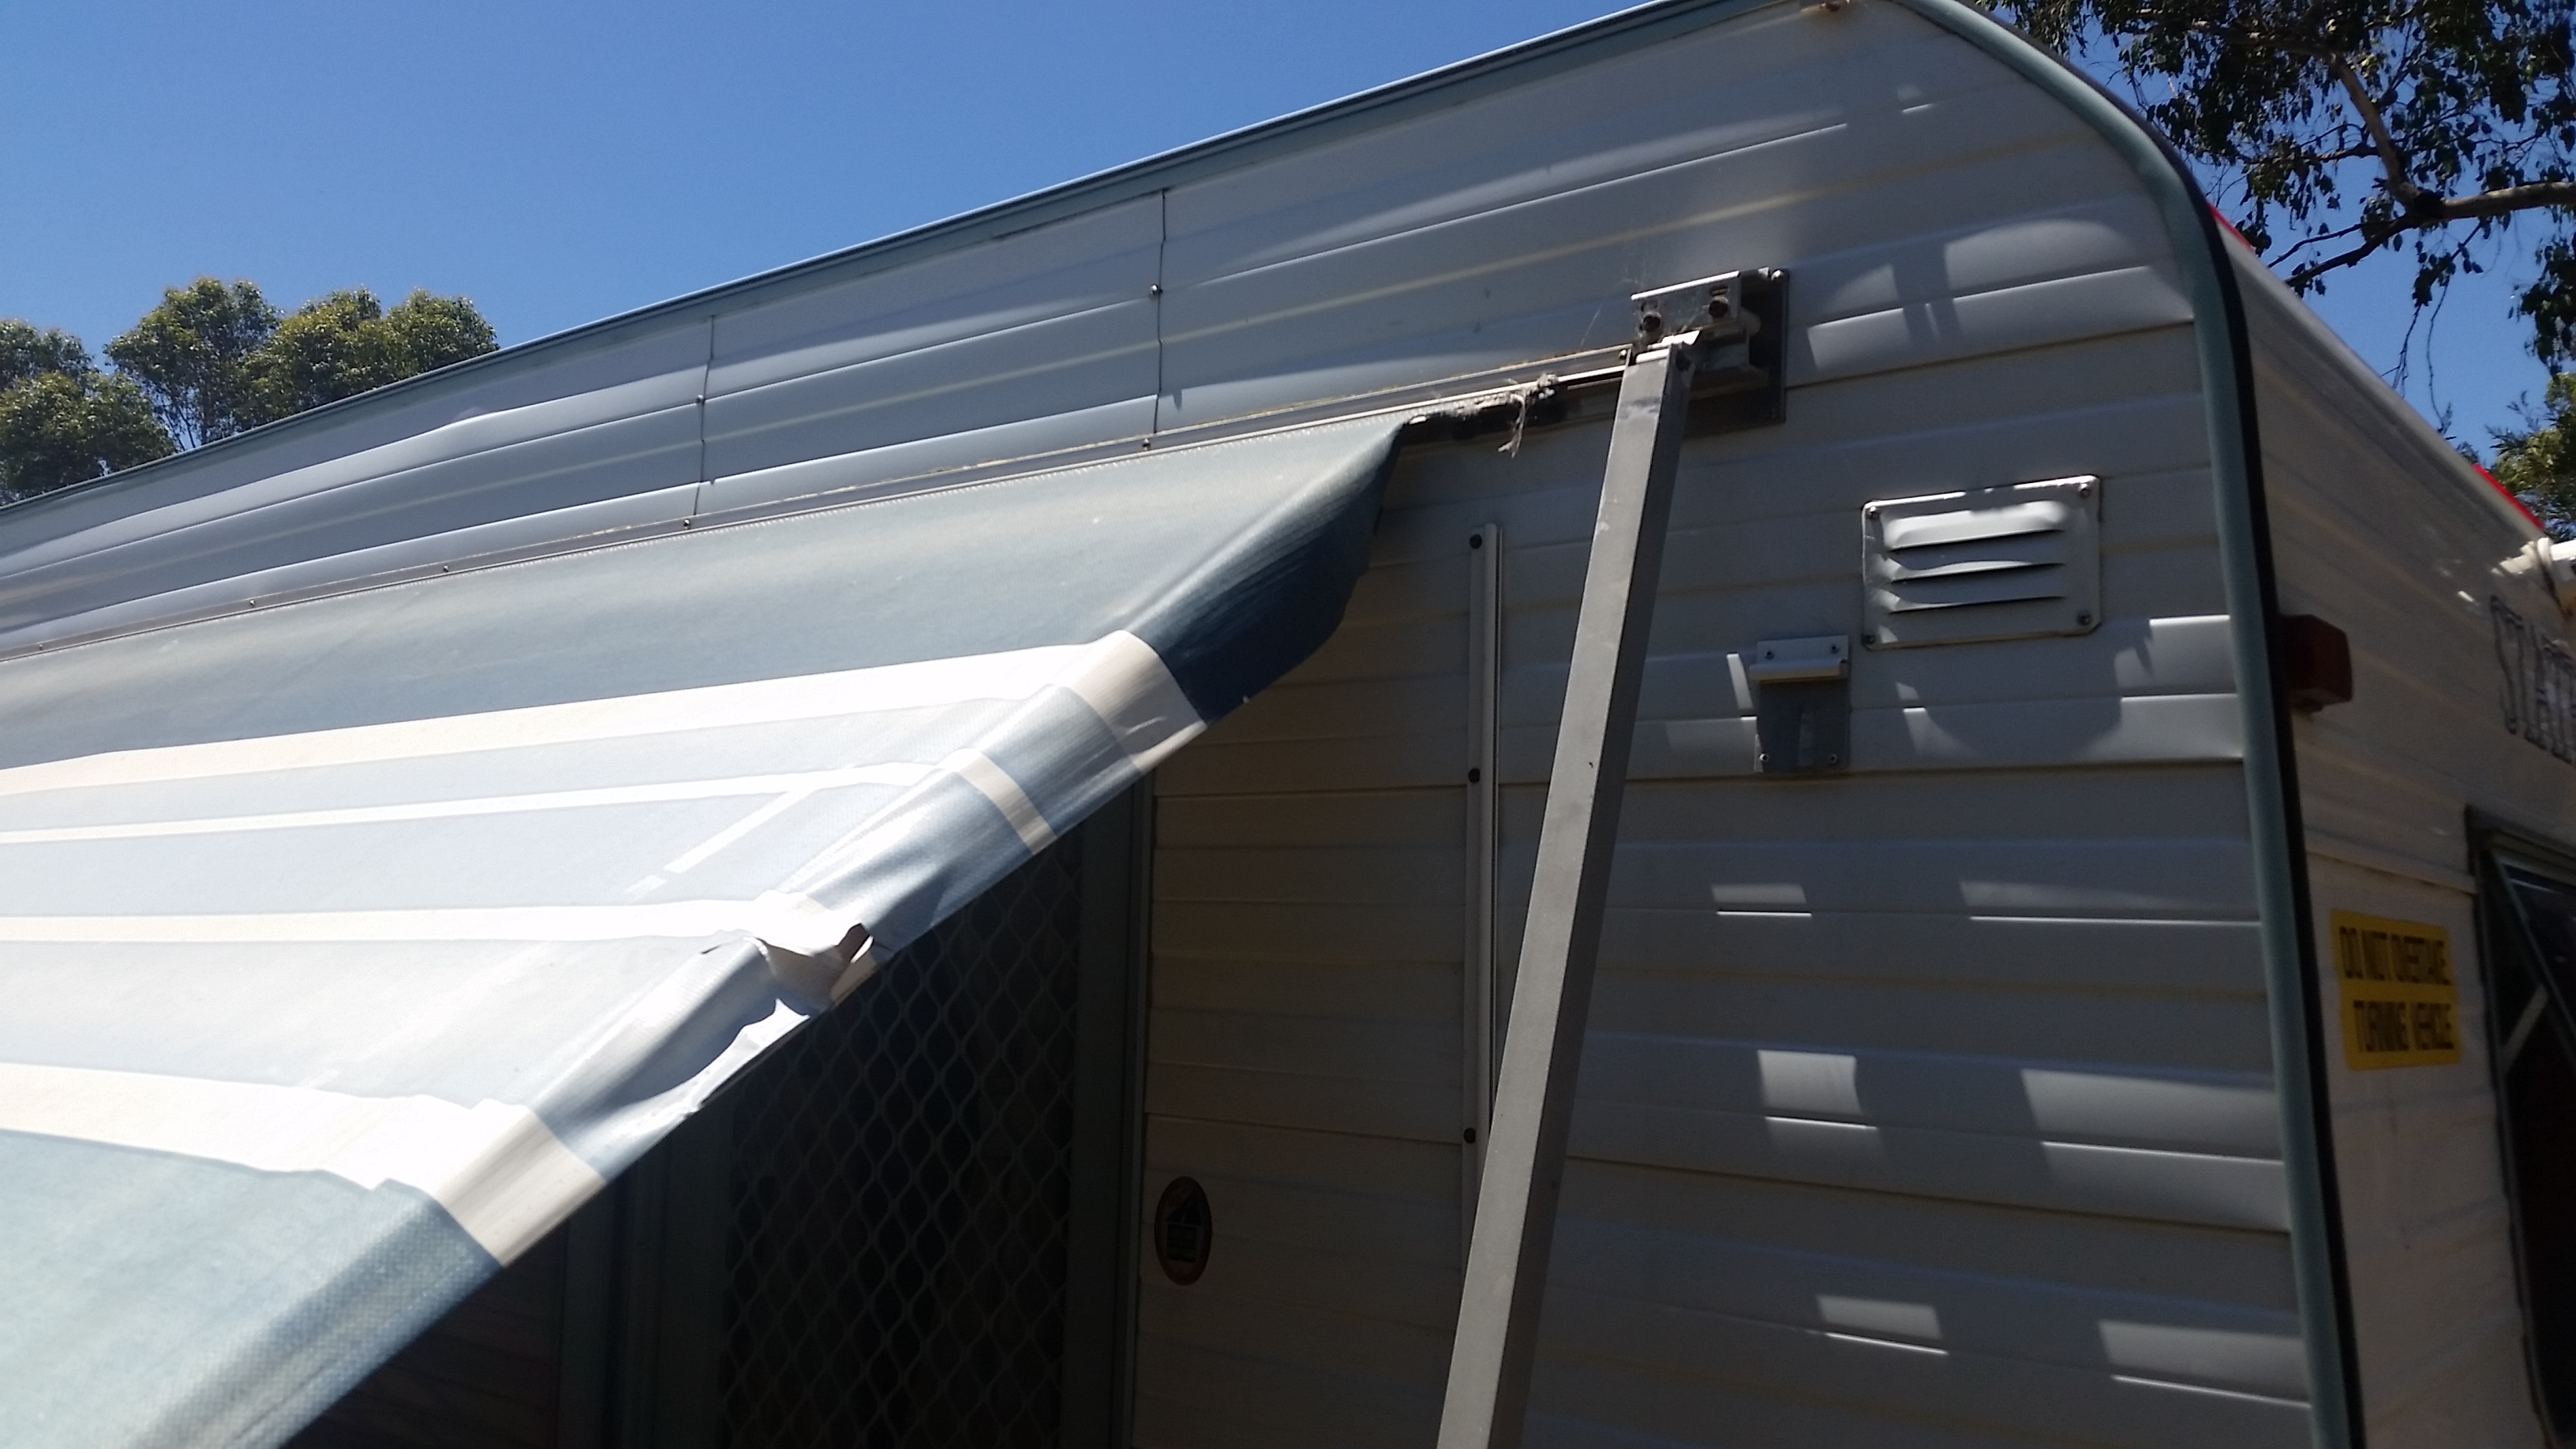 Rollout Awning Repair | Peninsula Caravan Services